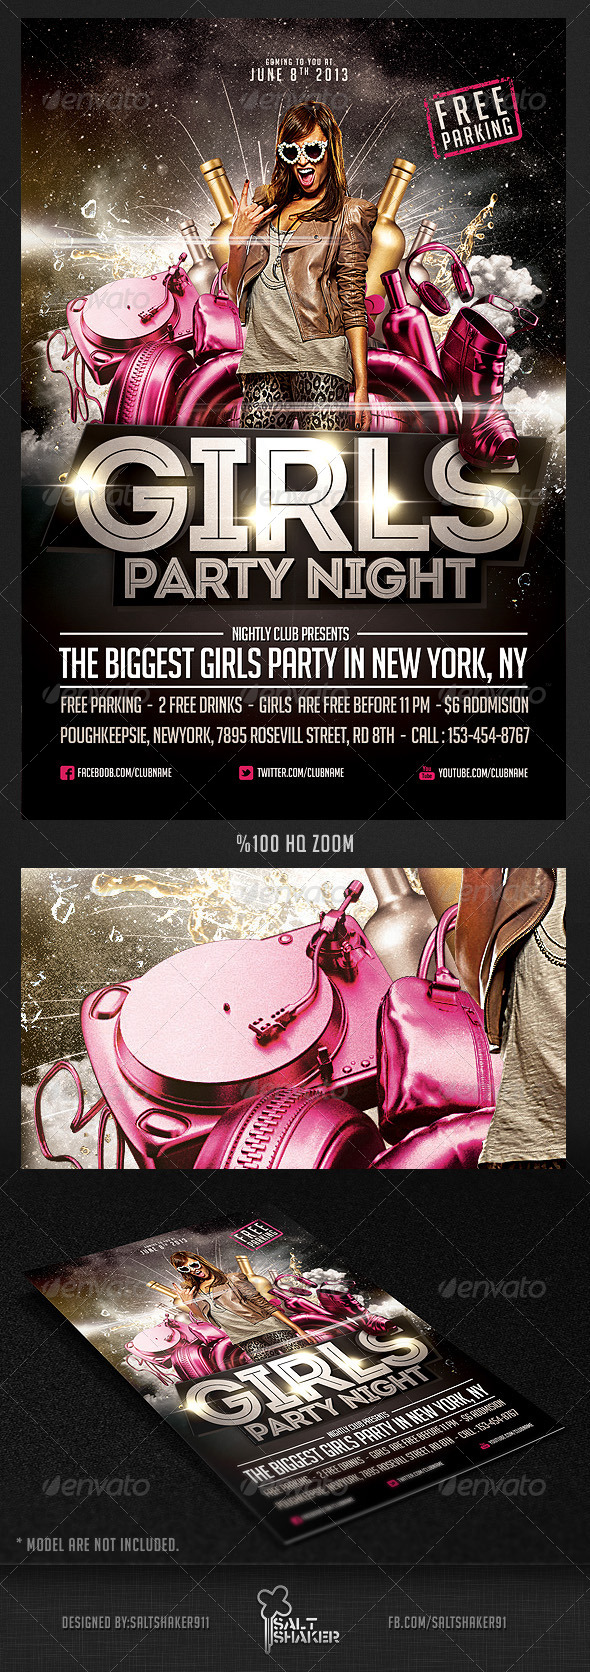 Girls Party Night Flyer Template By Saltshaker911 Graphicriver